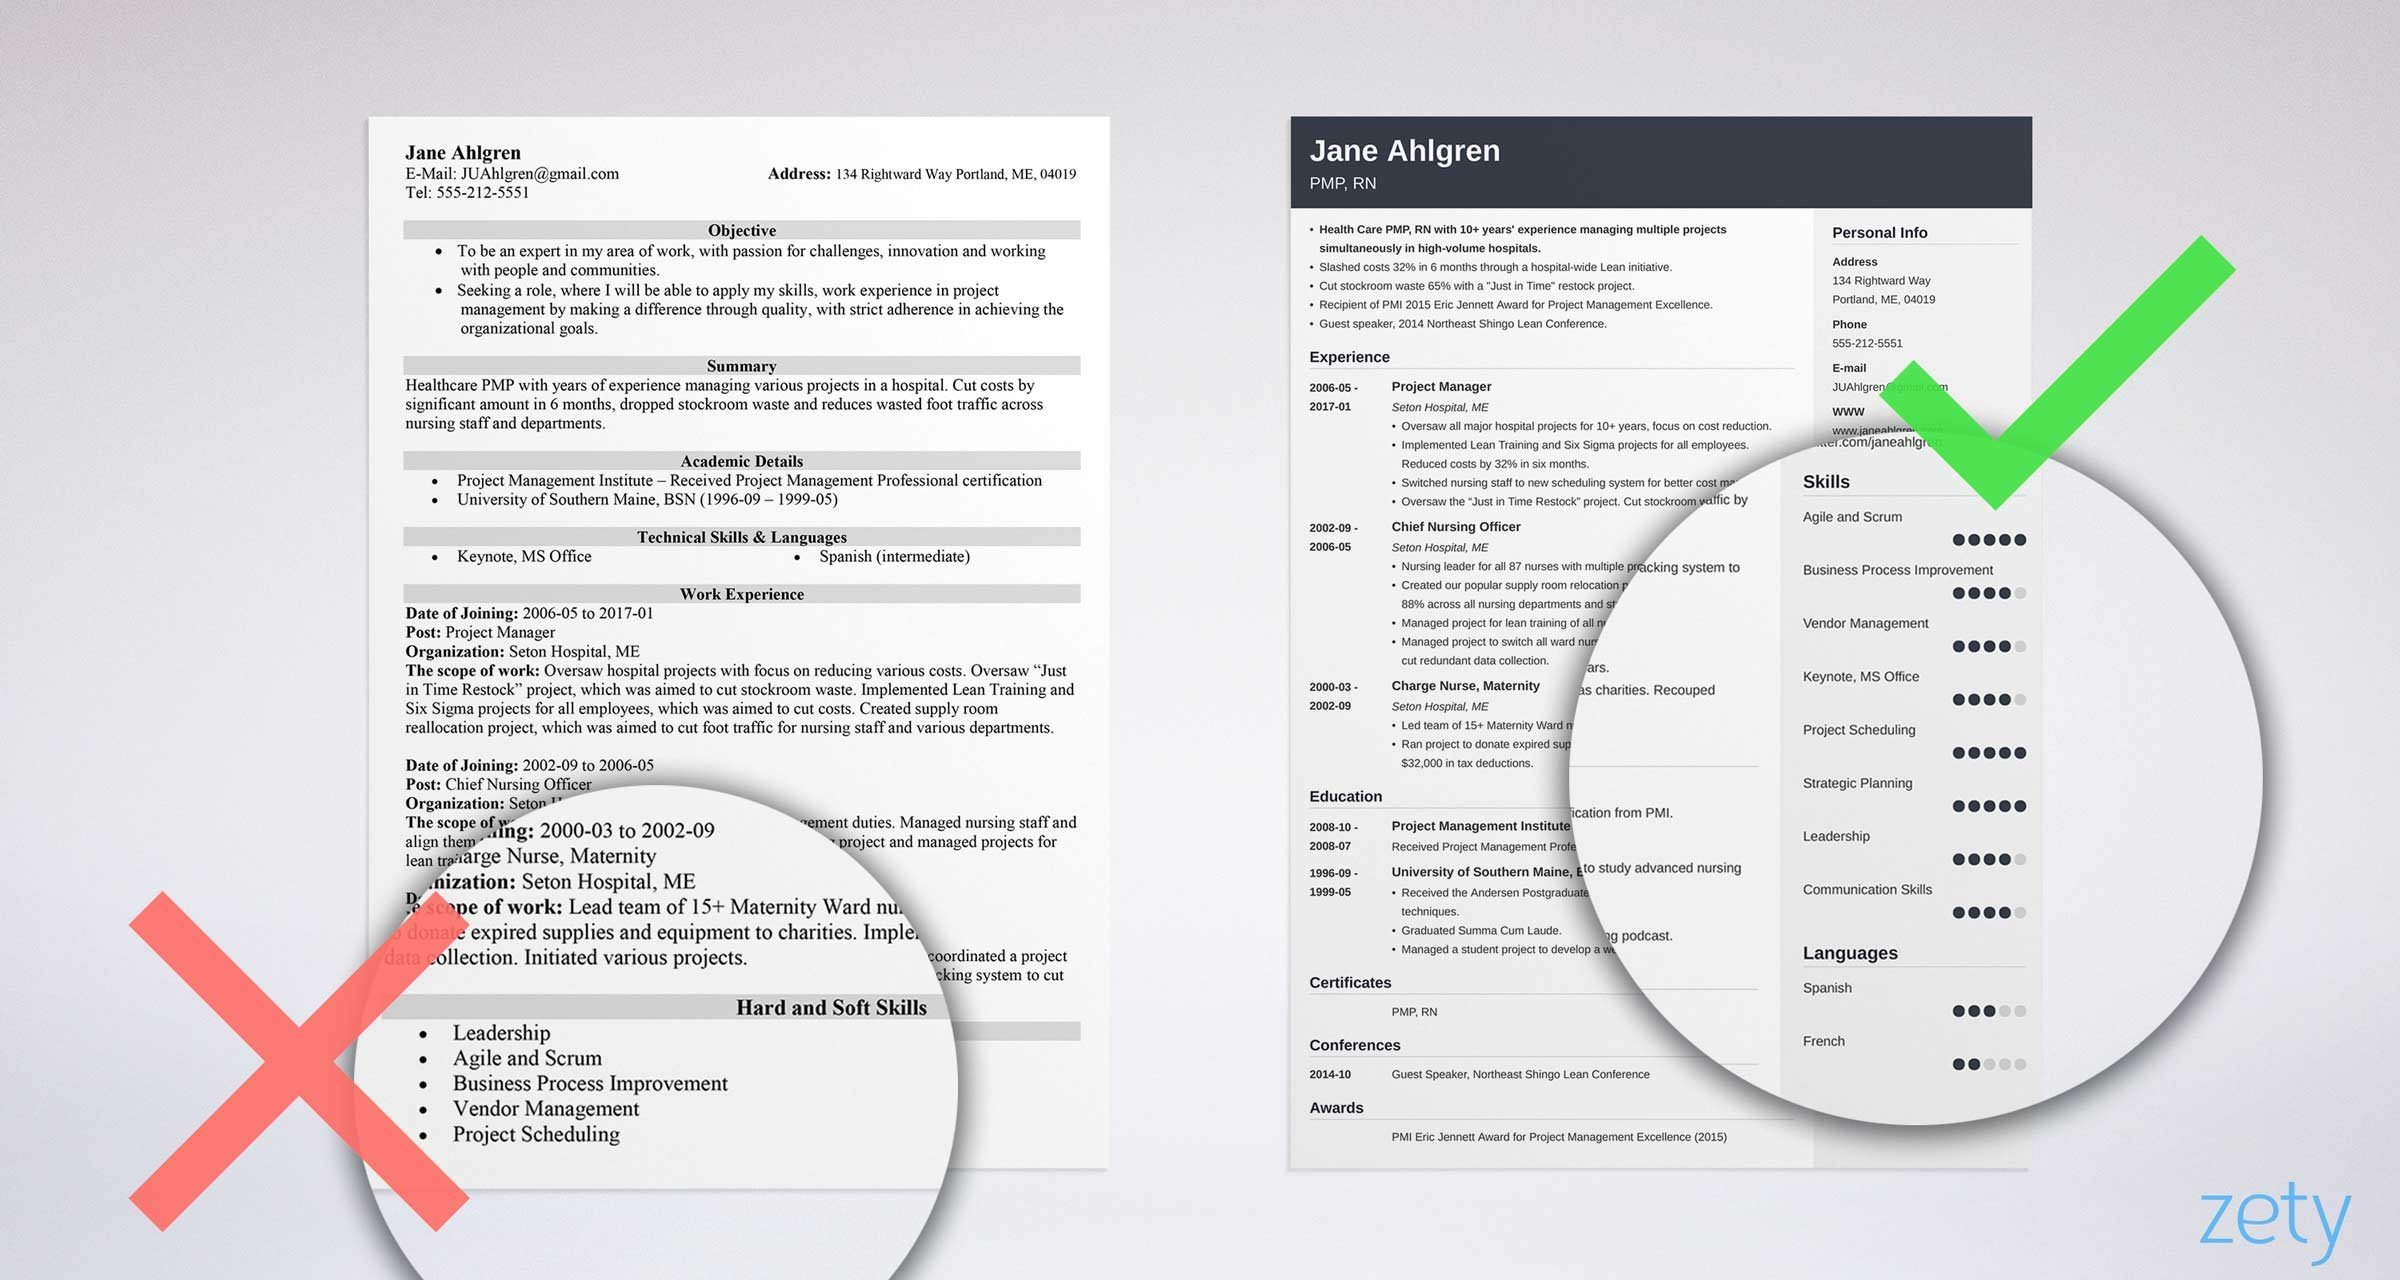 best computer skills for resume software employers literate on cta zety writing guild Resume Computer Literate Resume